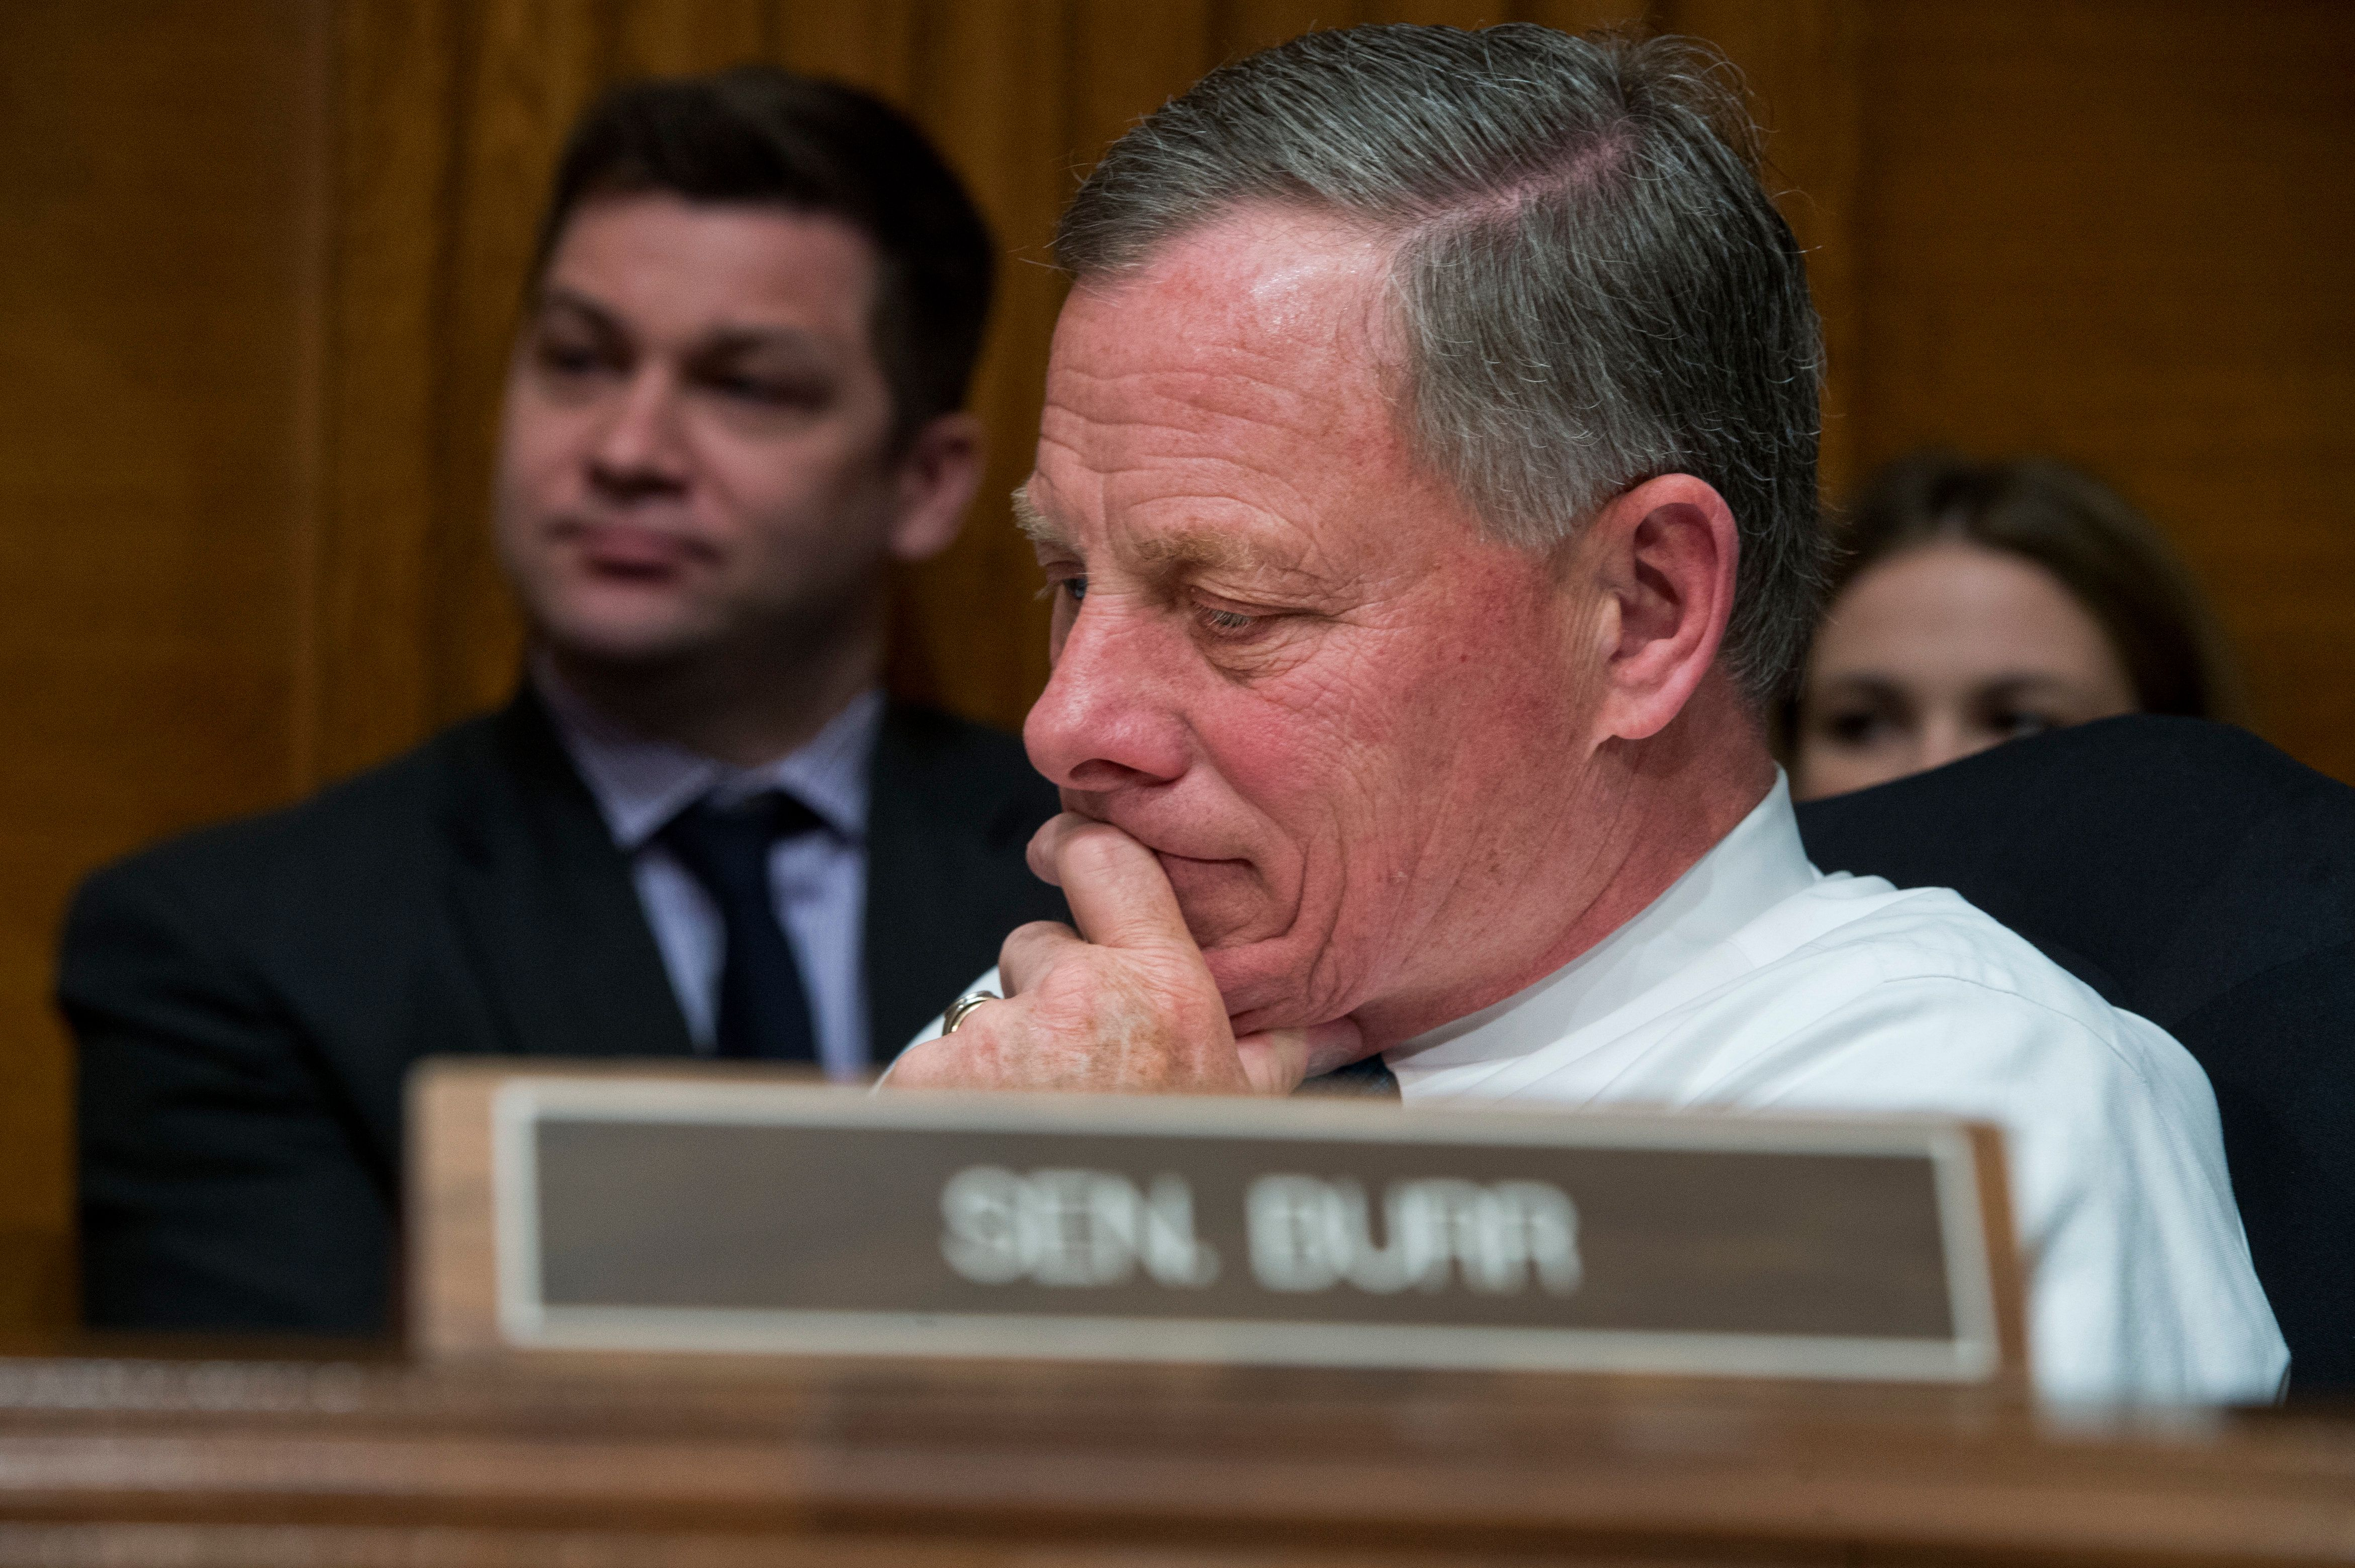 UNITED STATES - APRIL 12: Sen. Richard Burr, R-N.C., attends a Senate Committee on Health, Education, Labor and Pensions hearing in Dirksen Building on the implementation of the Every Student Succeeds Act, featuring testimony by Education Secretary Dr. John King, April 12, 2016. (Photo By Tom Williams/CQ Roll Call)